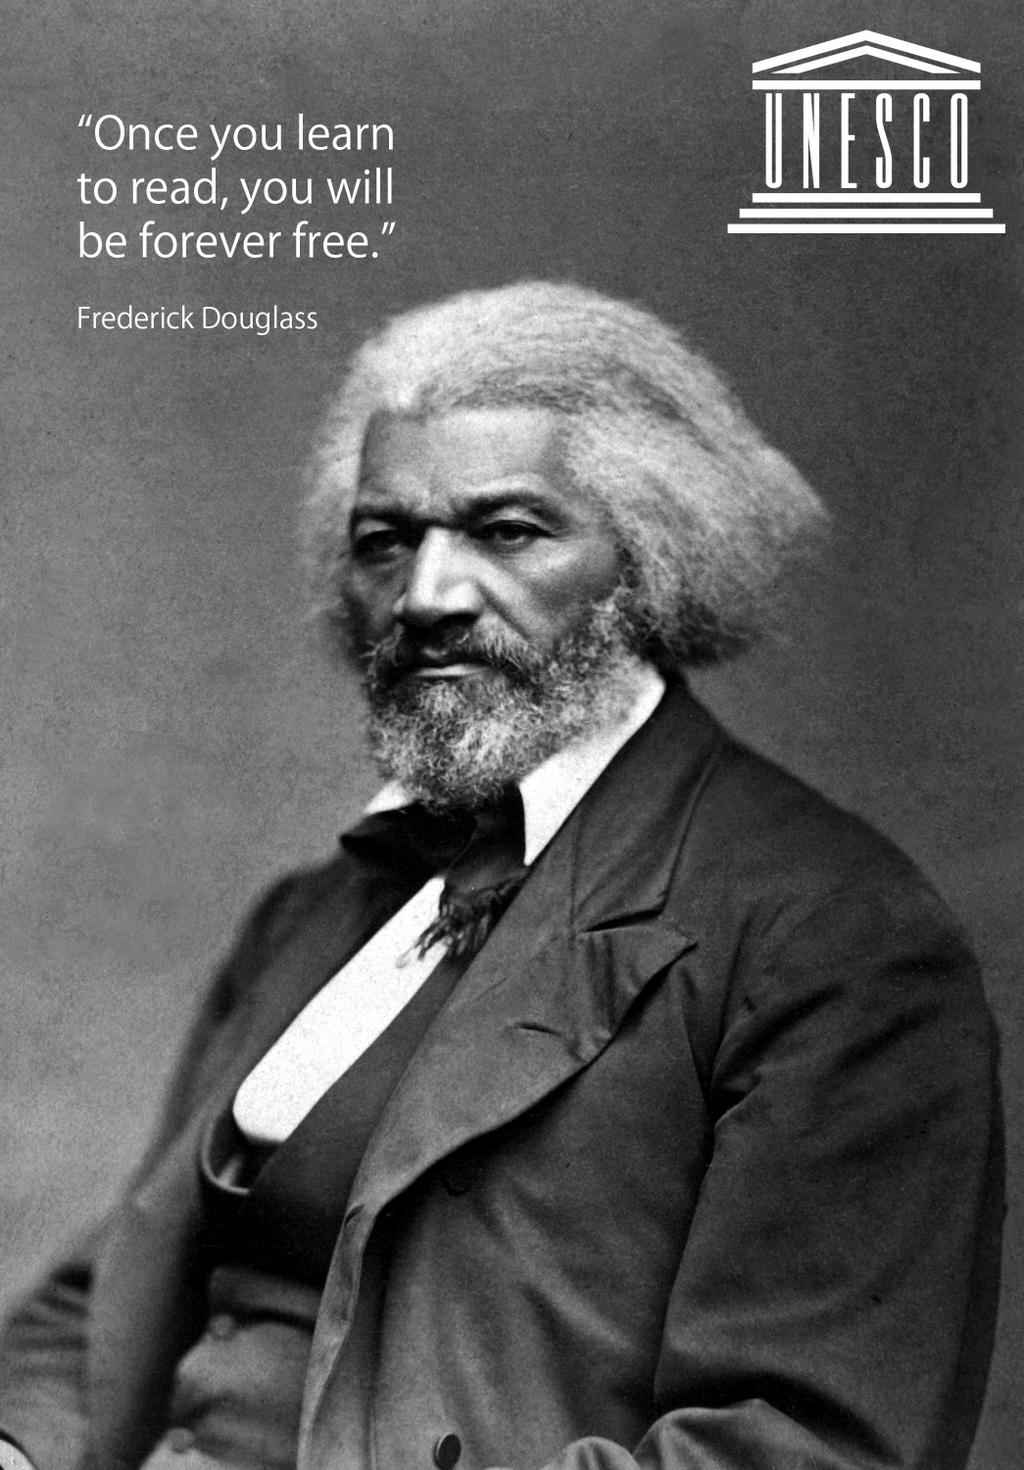 Uk Best Essays Frederick Douglass On Reading And Freedom  Essay On Parenting Styles also Theme Of Essay Pax On Both Houses Frederick Douglass On Reading And Freedom Healthcare Essay Topics